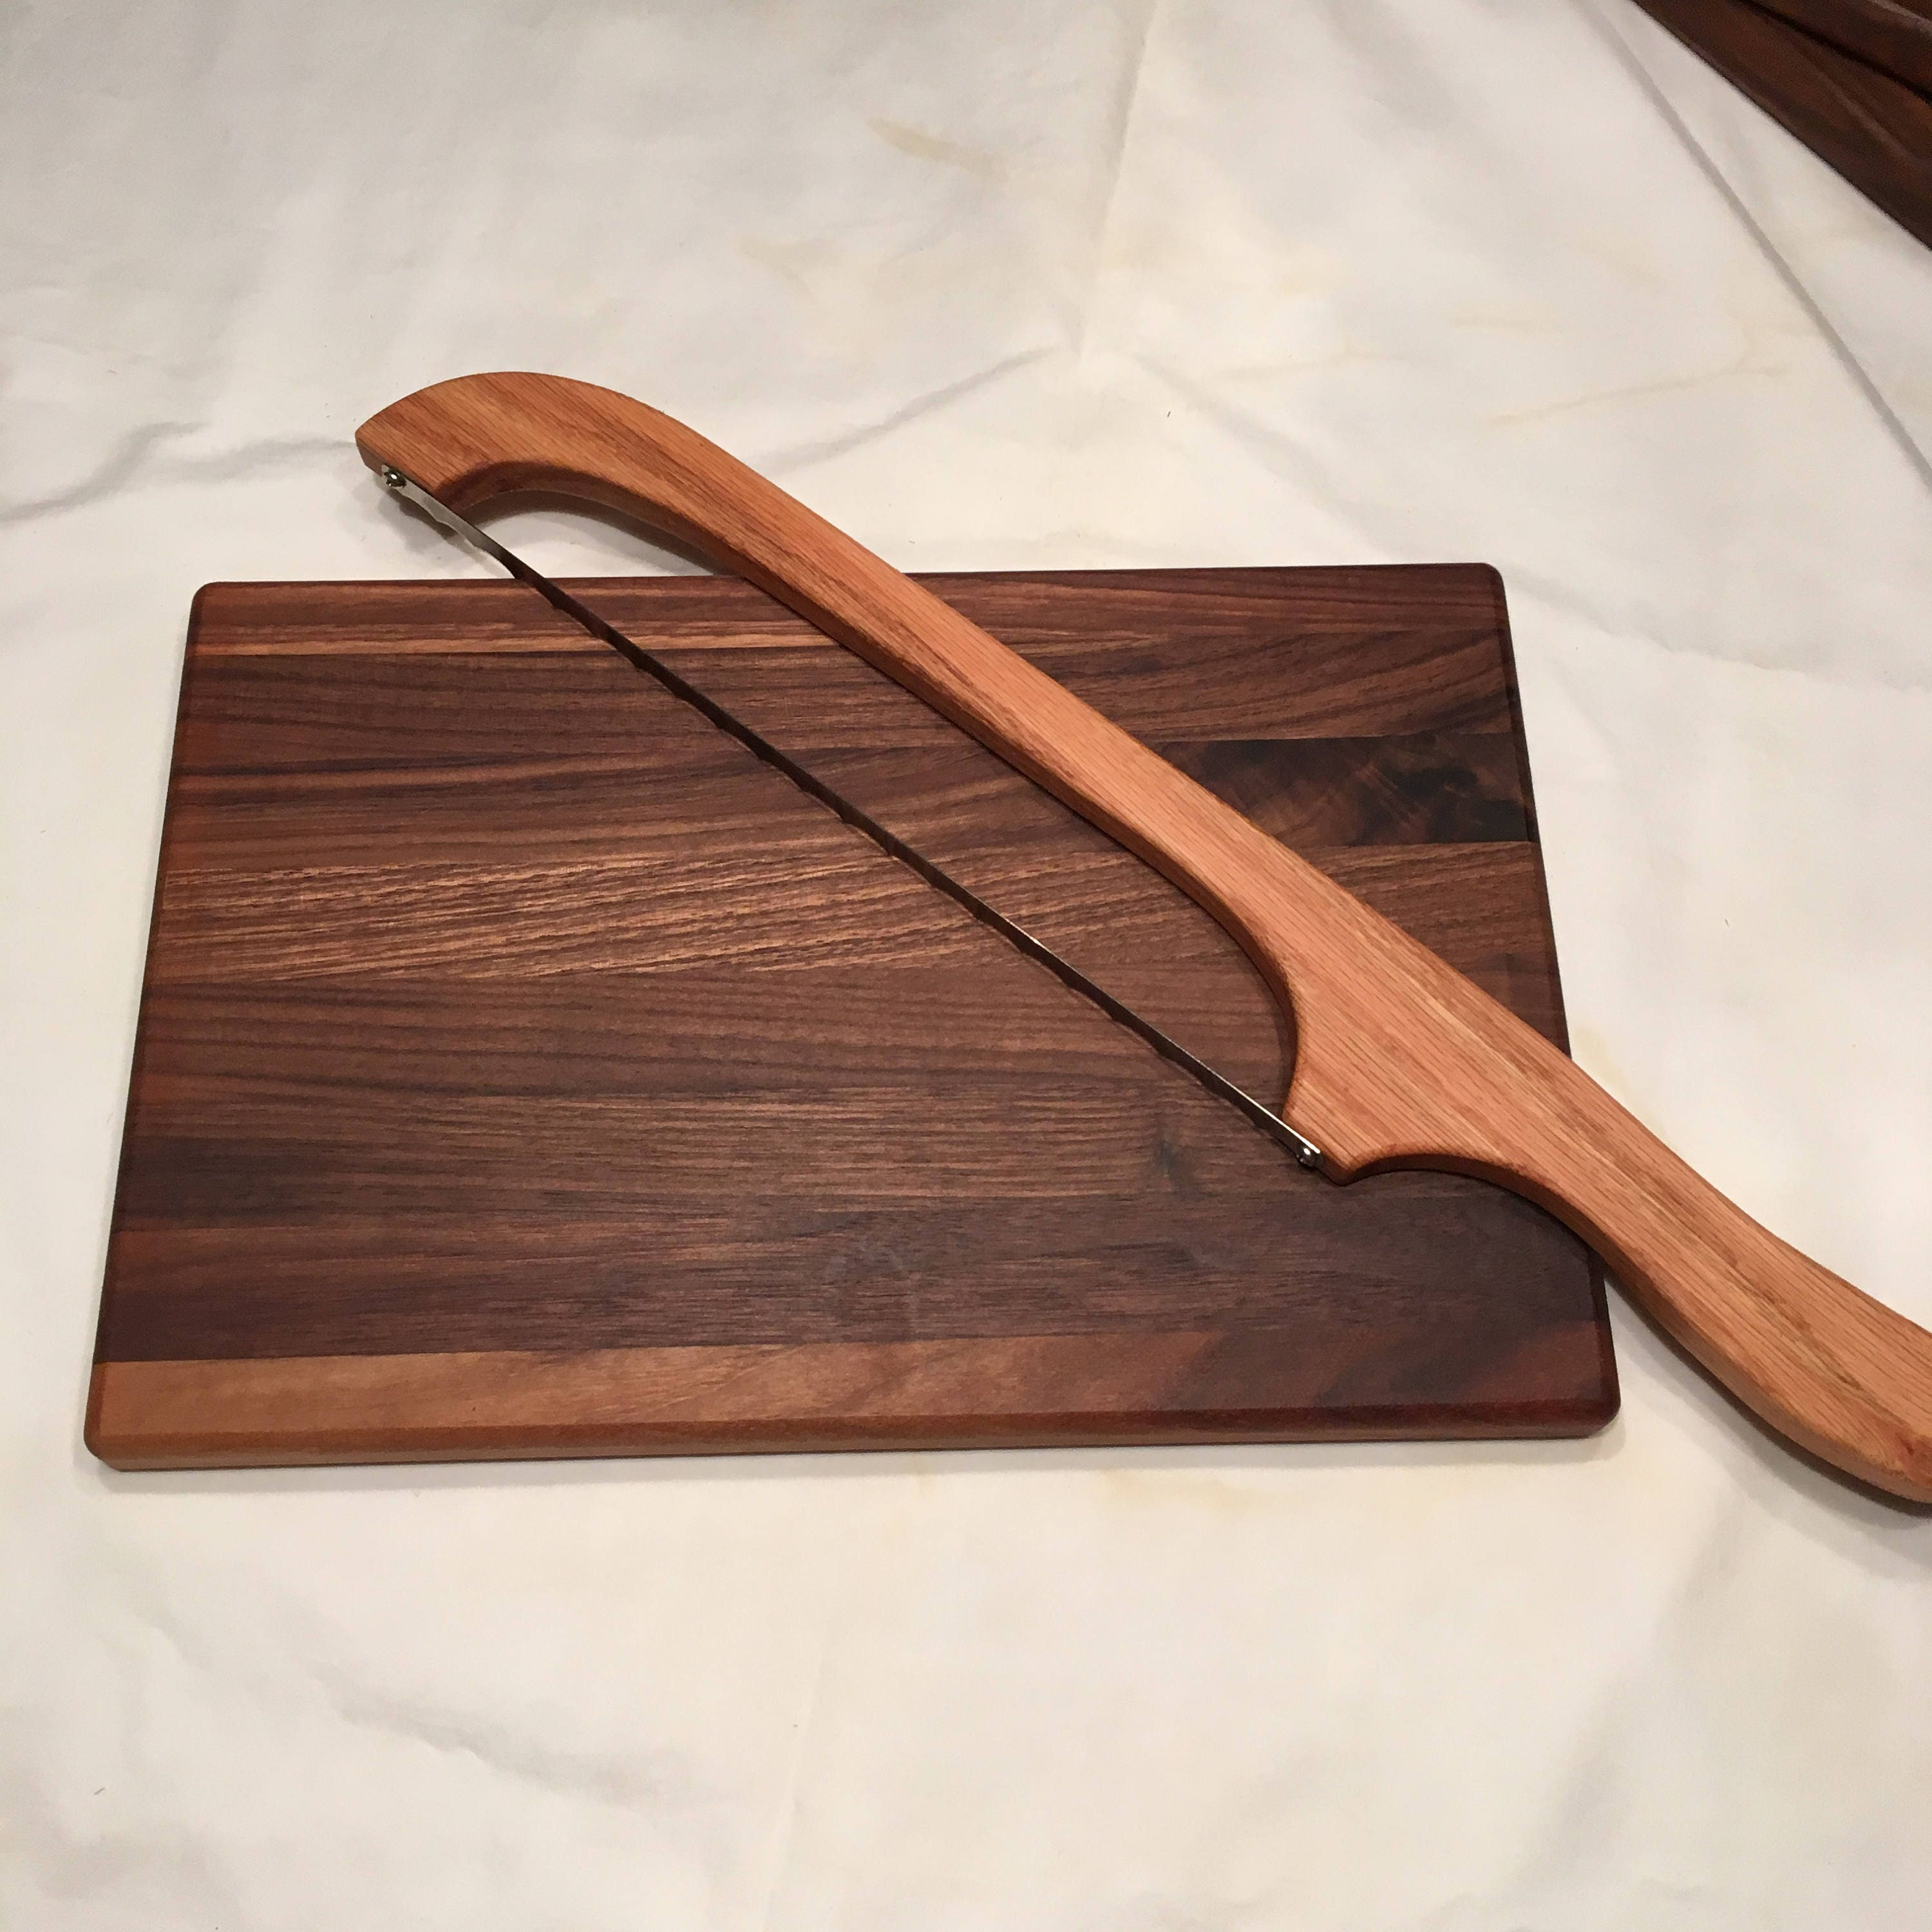 What Does A Carving Knife Look Like: Walnut Cutting Board Wood Cutting Board Carving Board